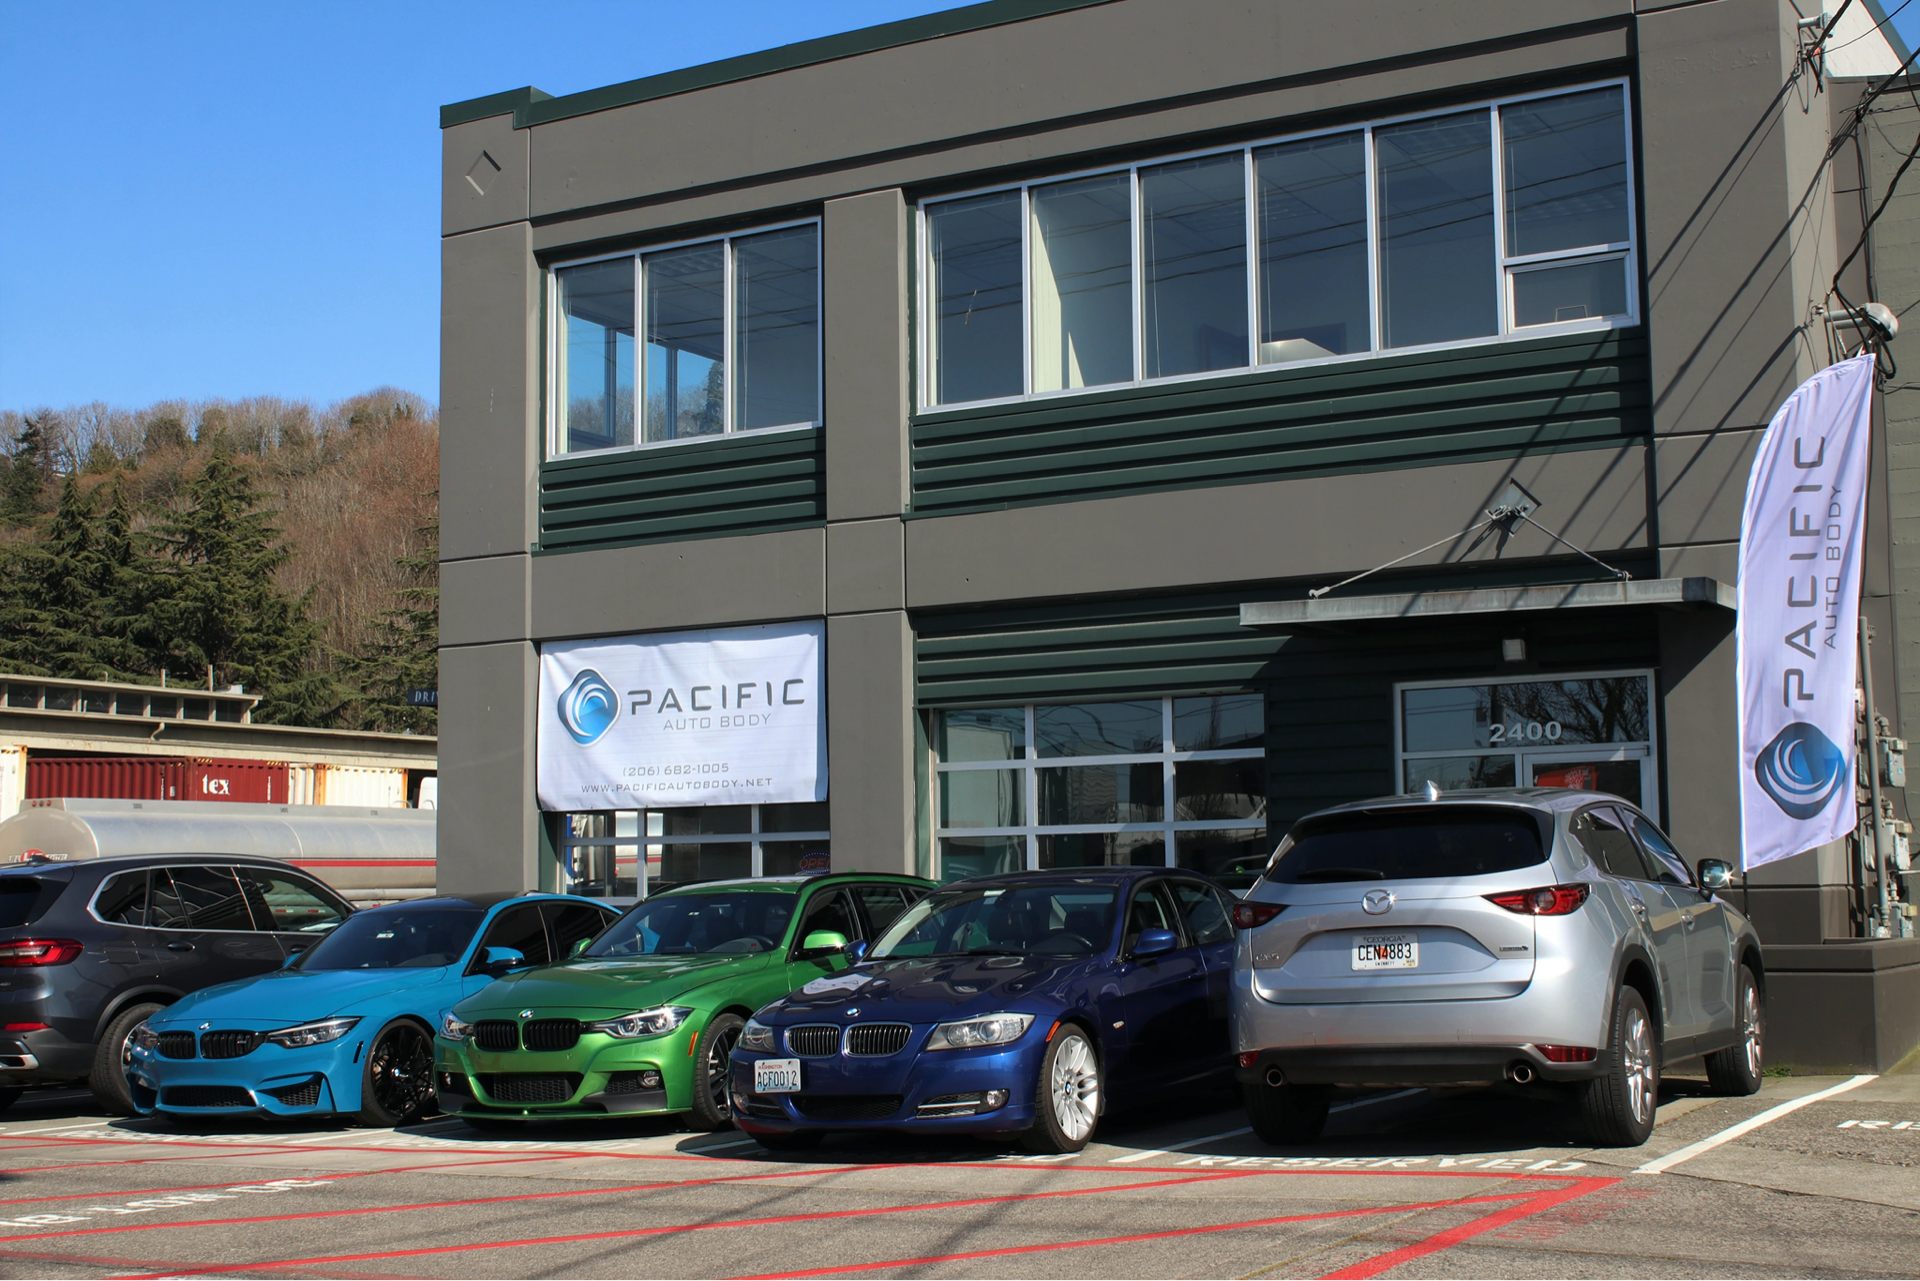 exterior view of Pacific auto body